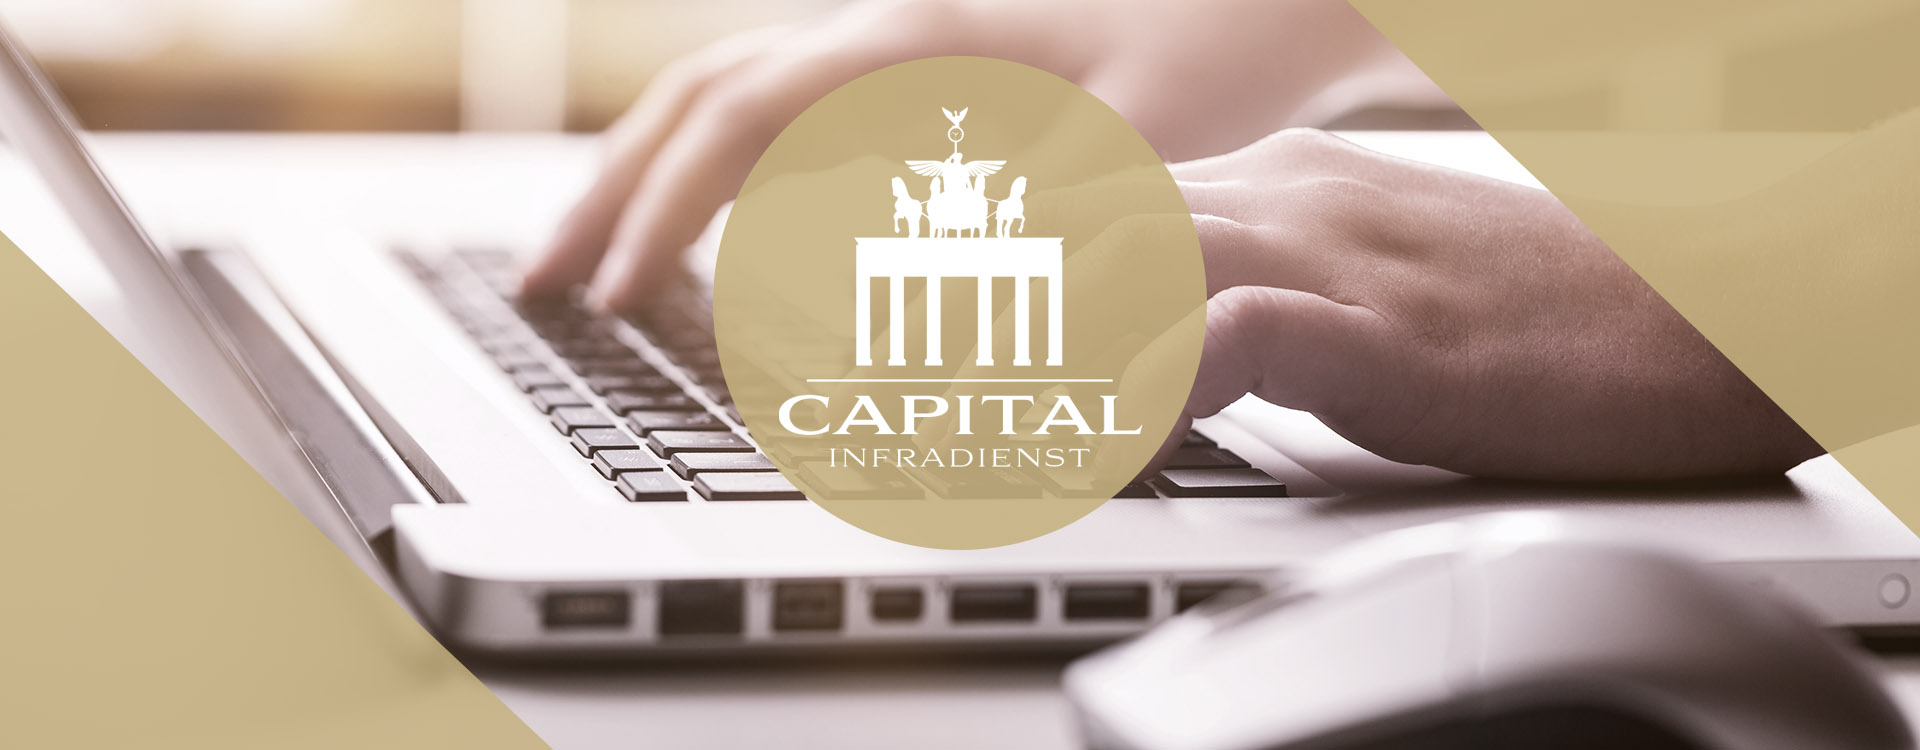 capital-infradienst-slider-kontakt